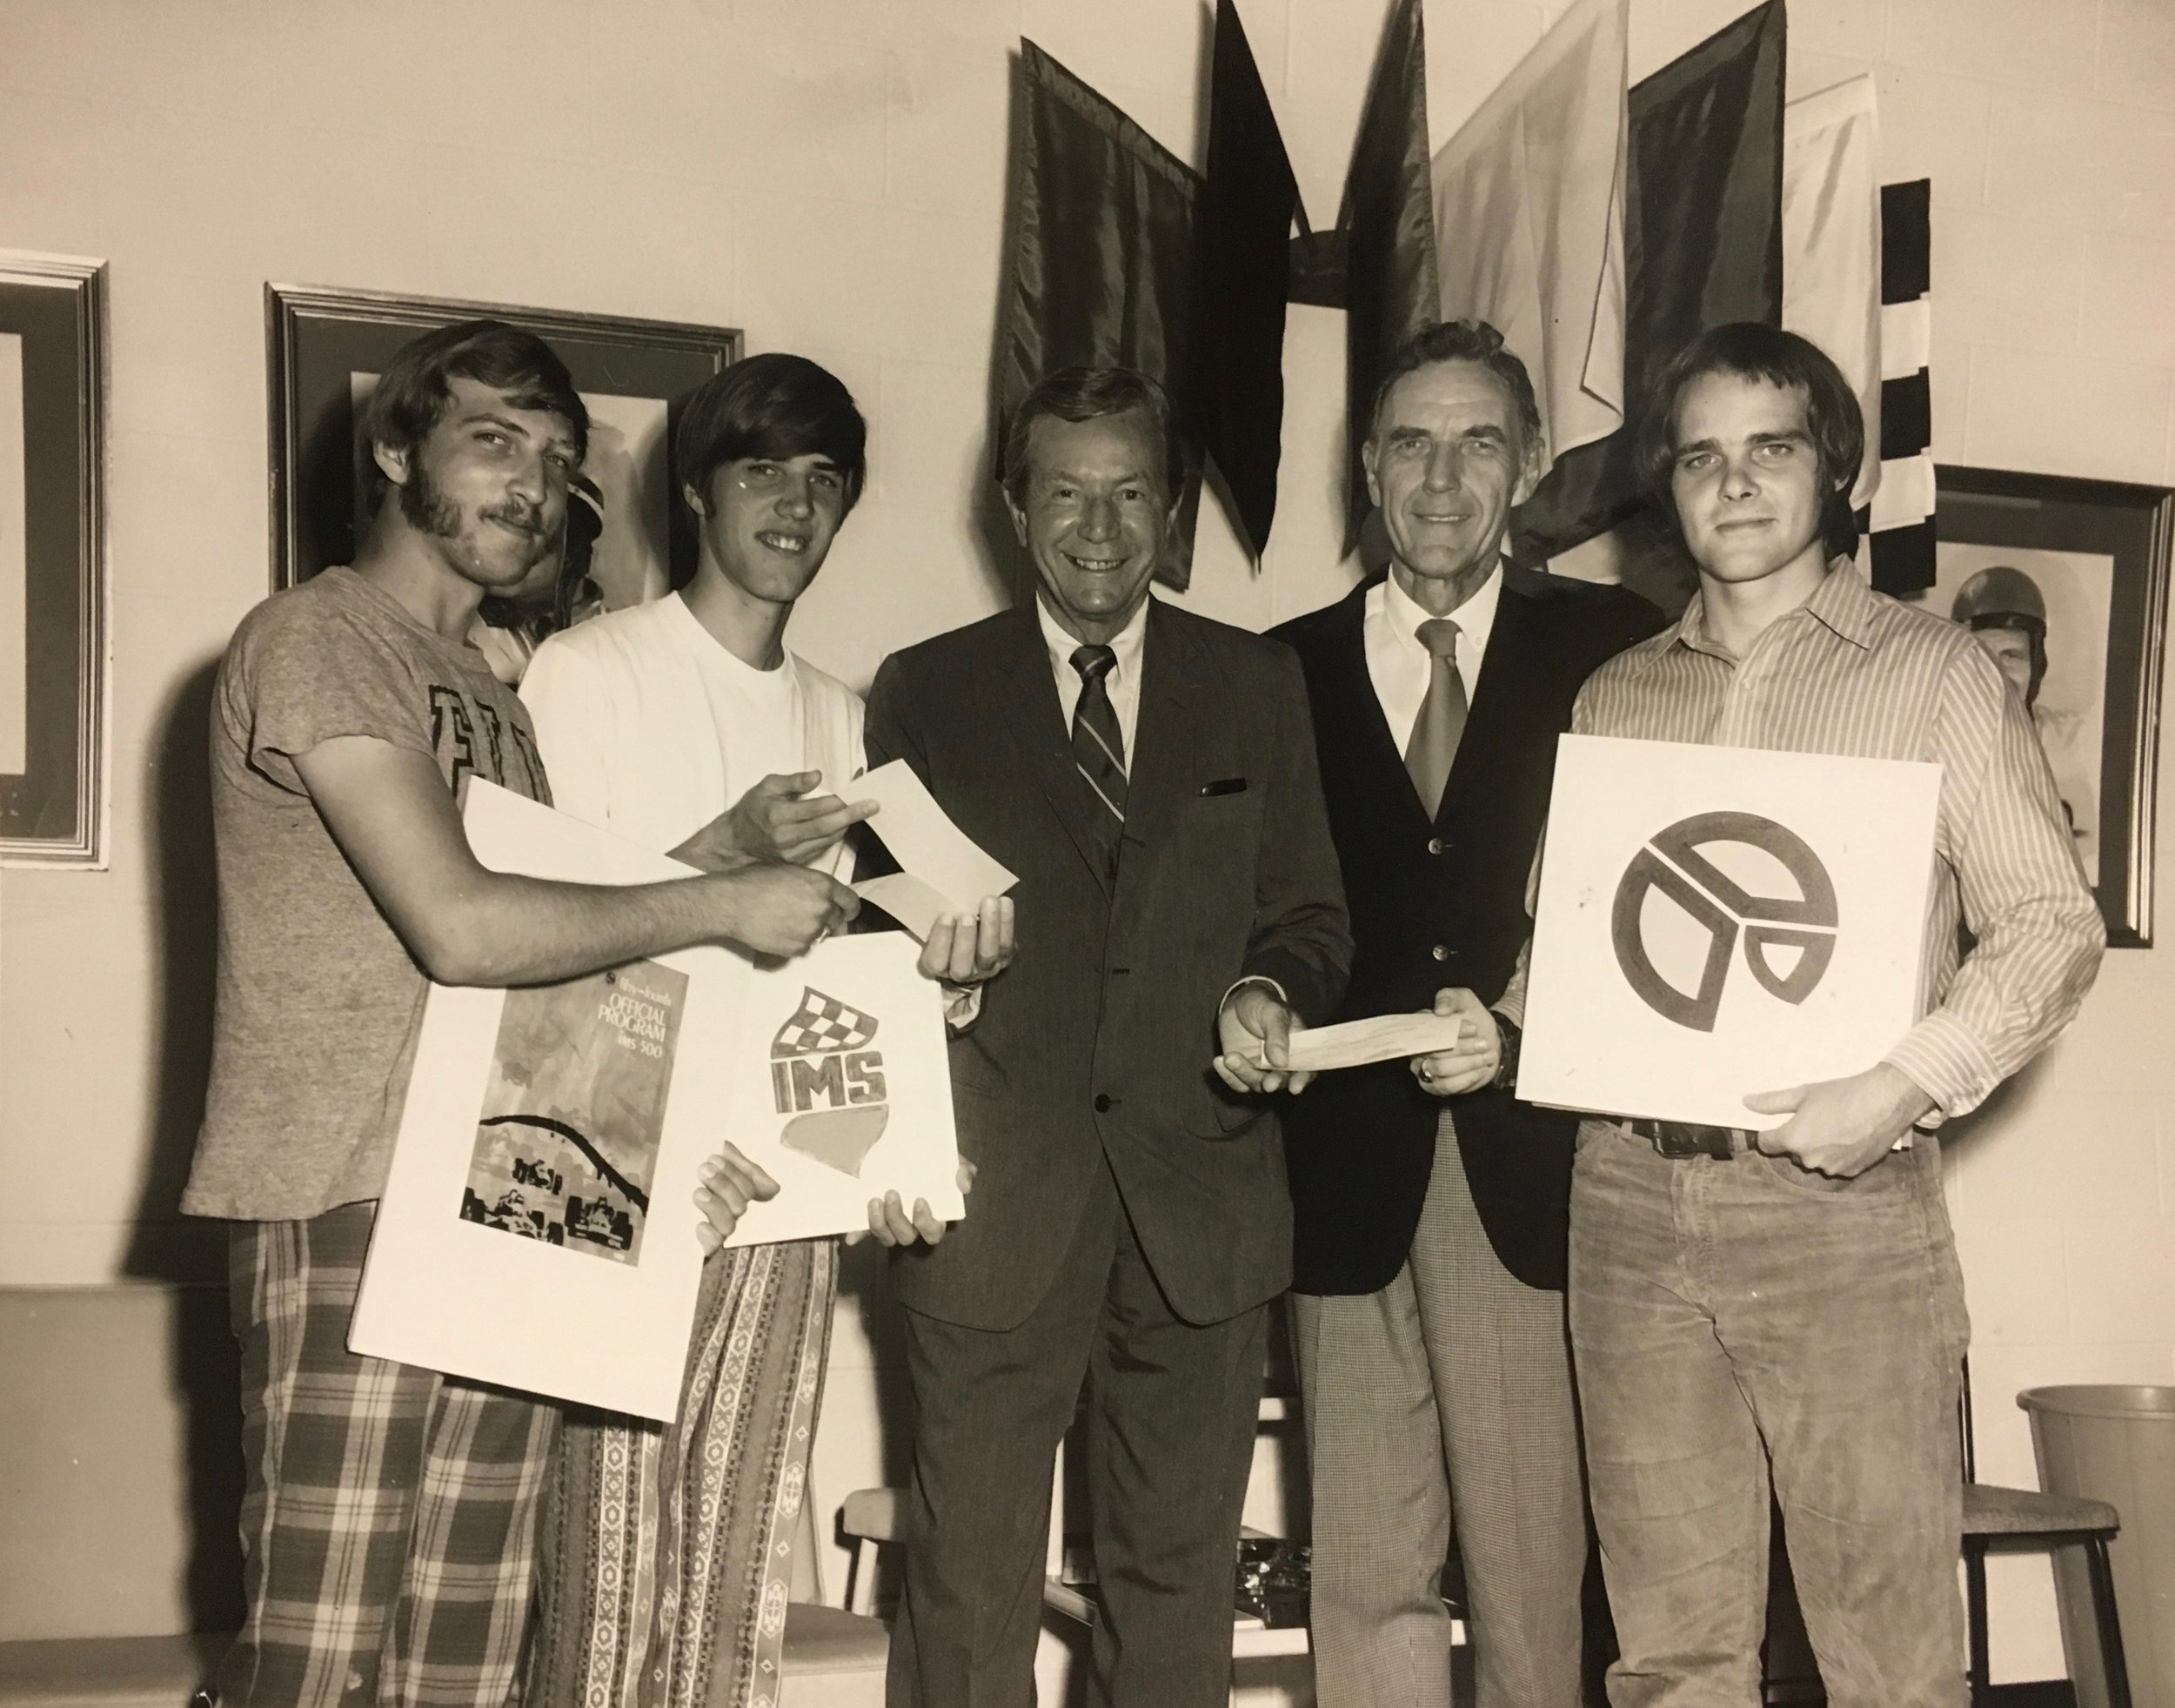 REW with students and Tony Hulman, 1971